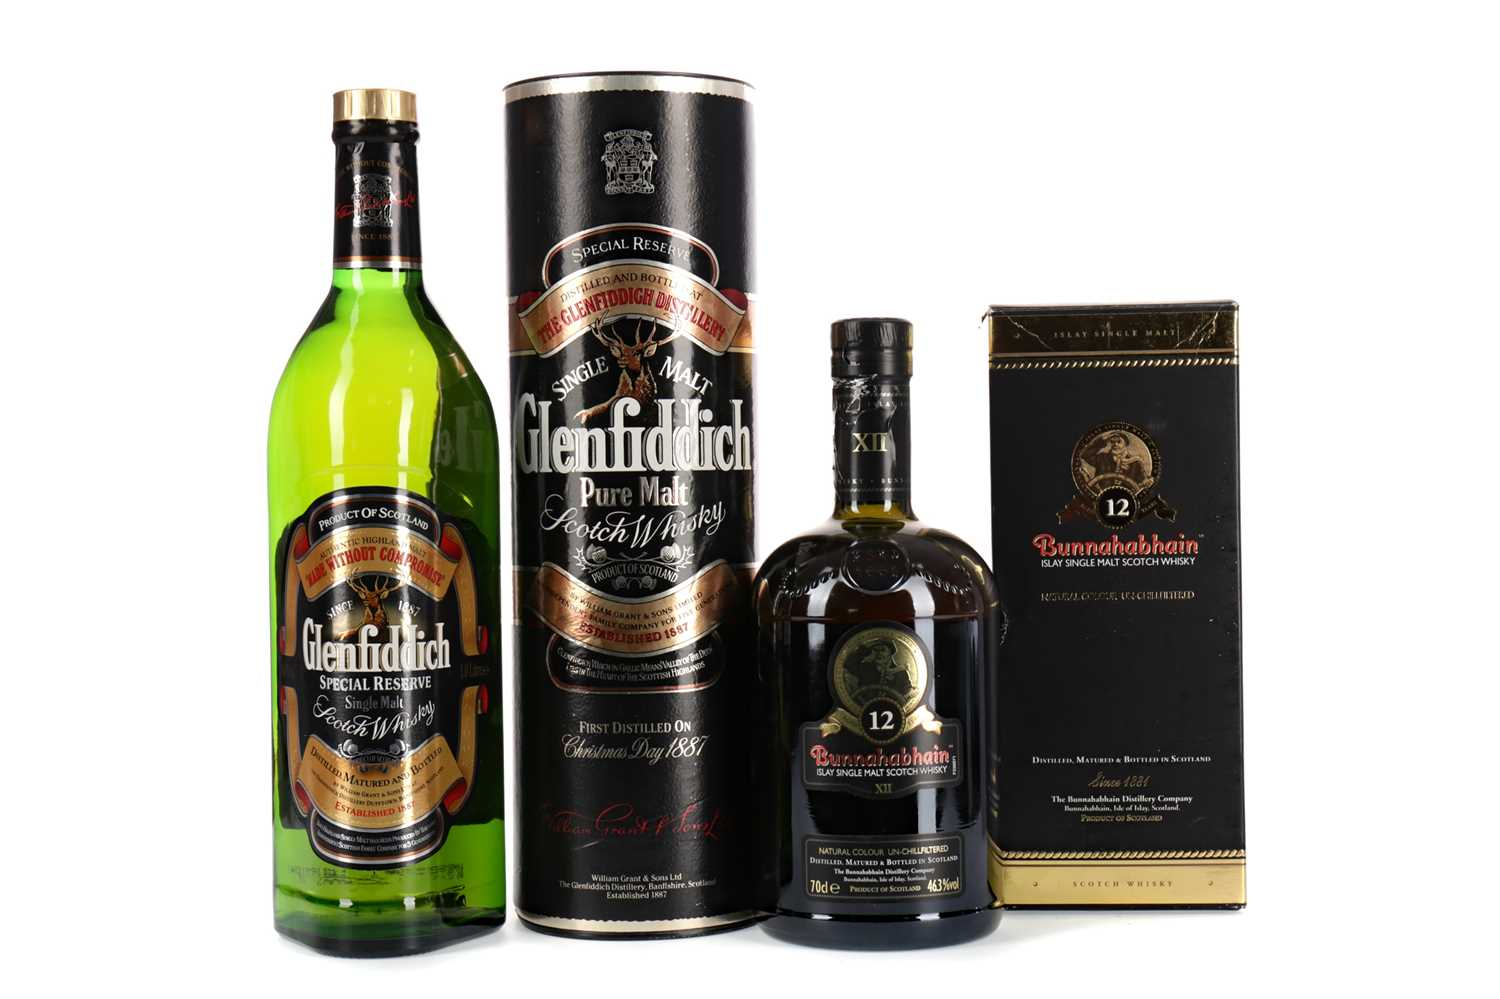 Lot 85 - GLENFIDDICH SPECIAL RESERVE AND BUNNAHABHAIN AGED 12 YEARS